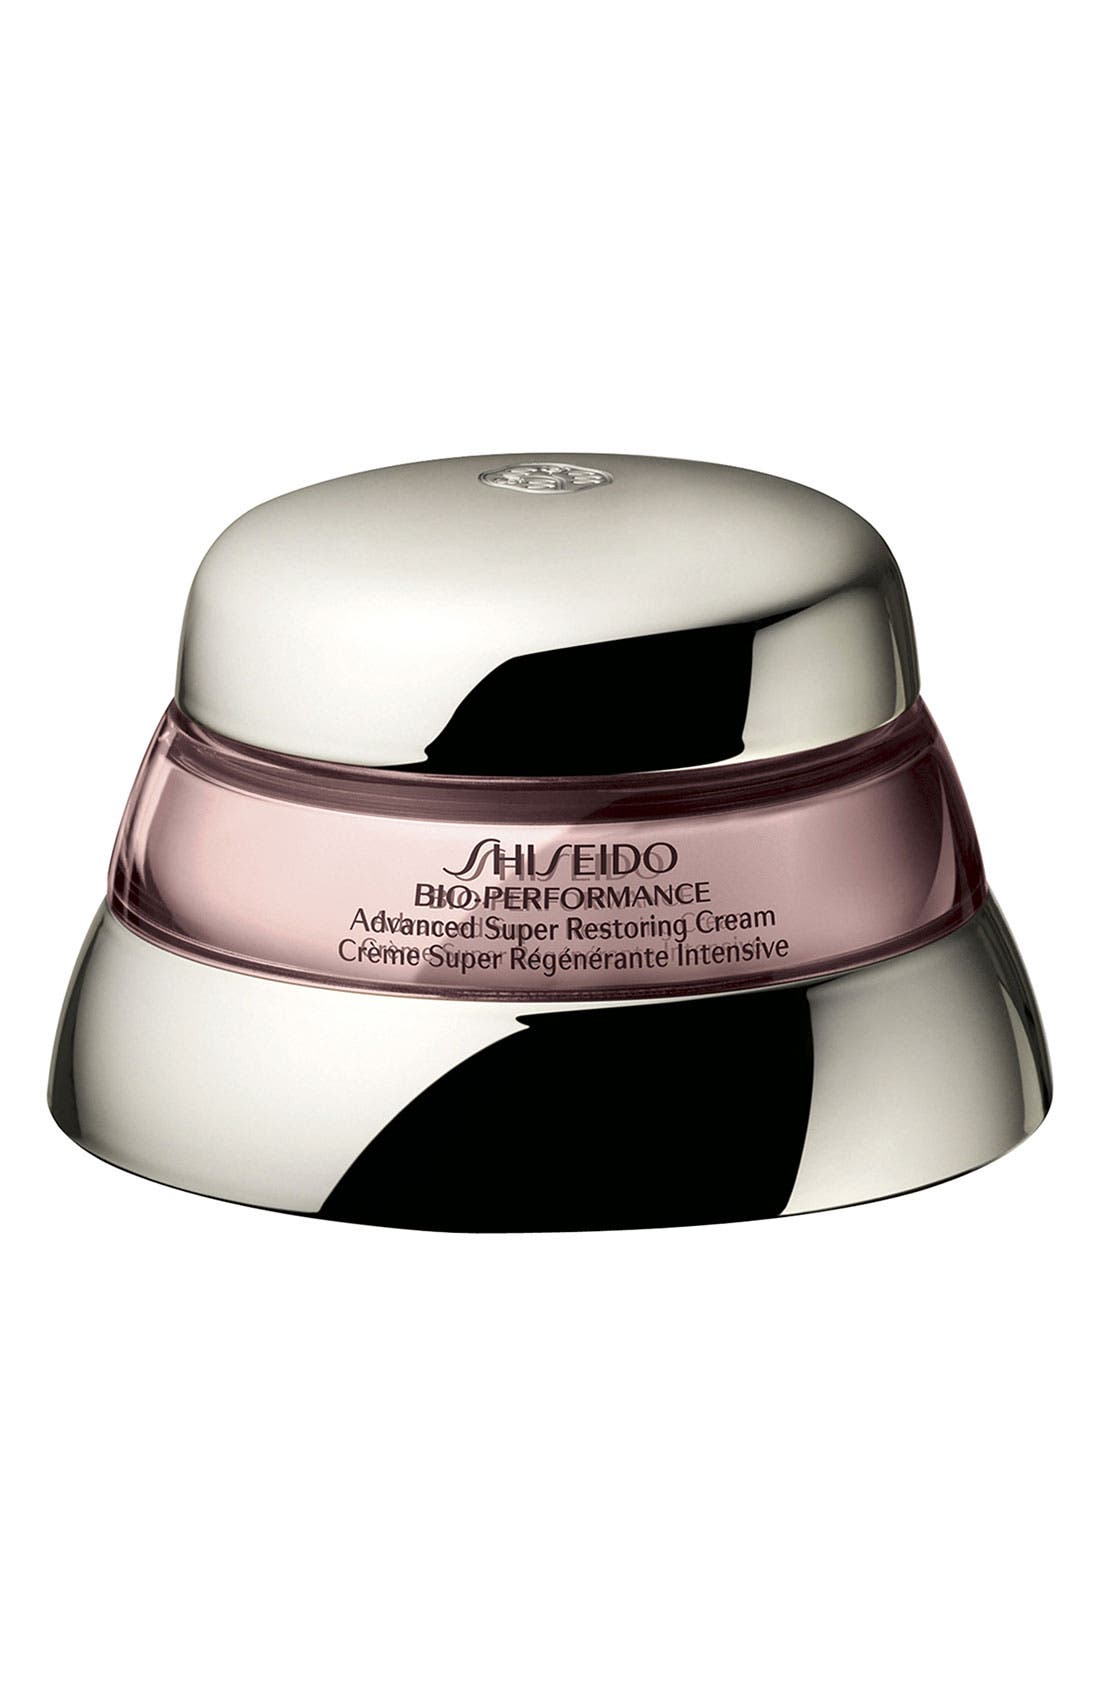 Shiseido 'Bio-Performance' Advanced Super Restoring Cream (2.5 oz.)